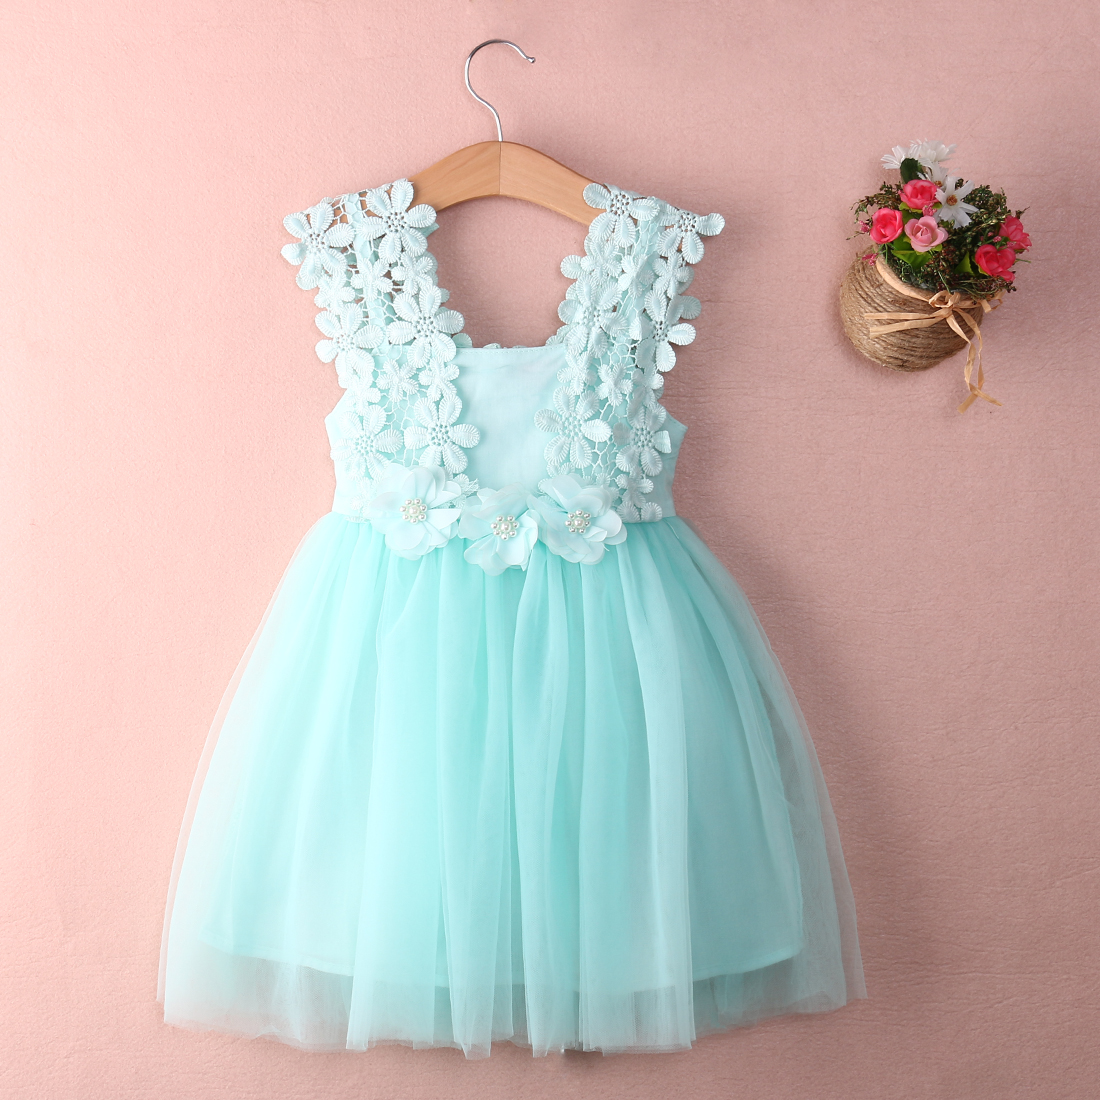 Luxury Party Baby Dress Photo - All Wedding Dresses ...